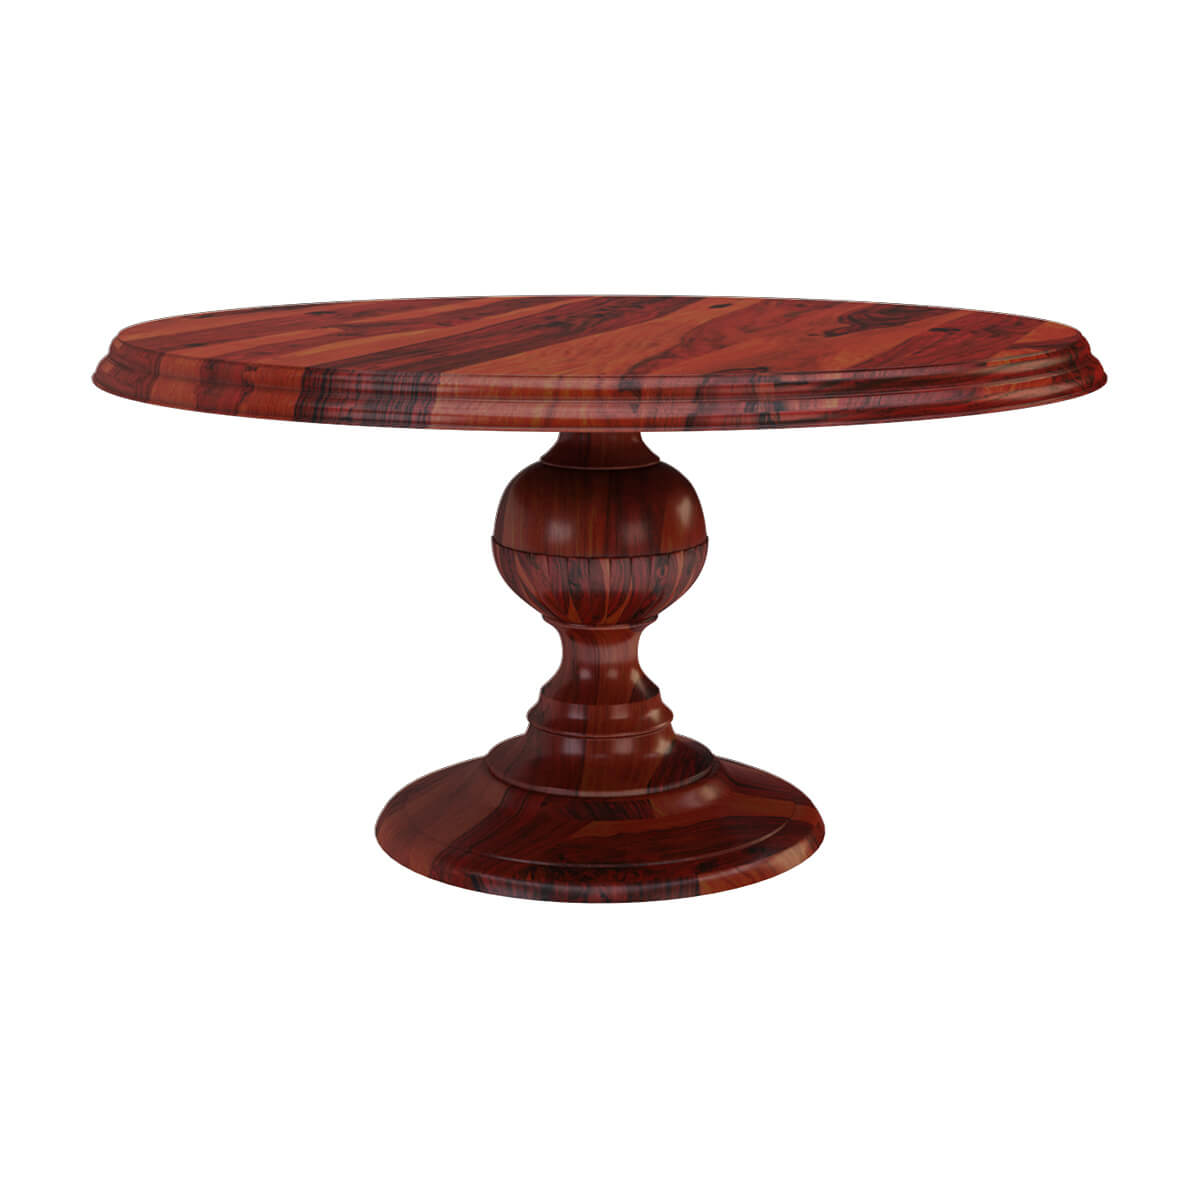 Sierra Concepts 60 Solid Wood Rustic Pedestal Round: rustic wood dining table